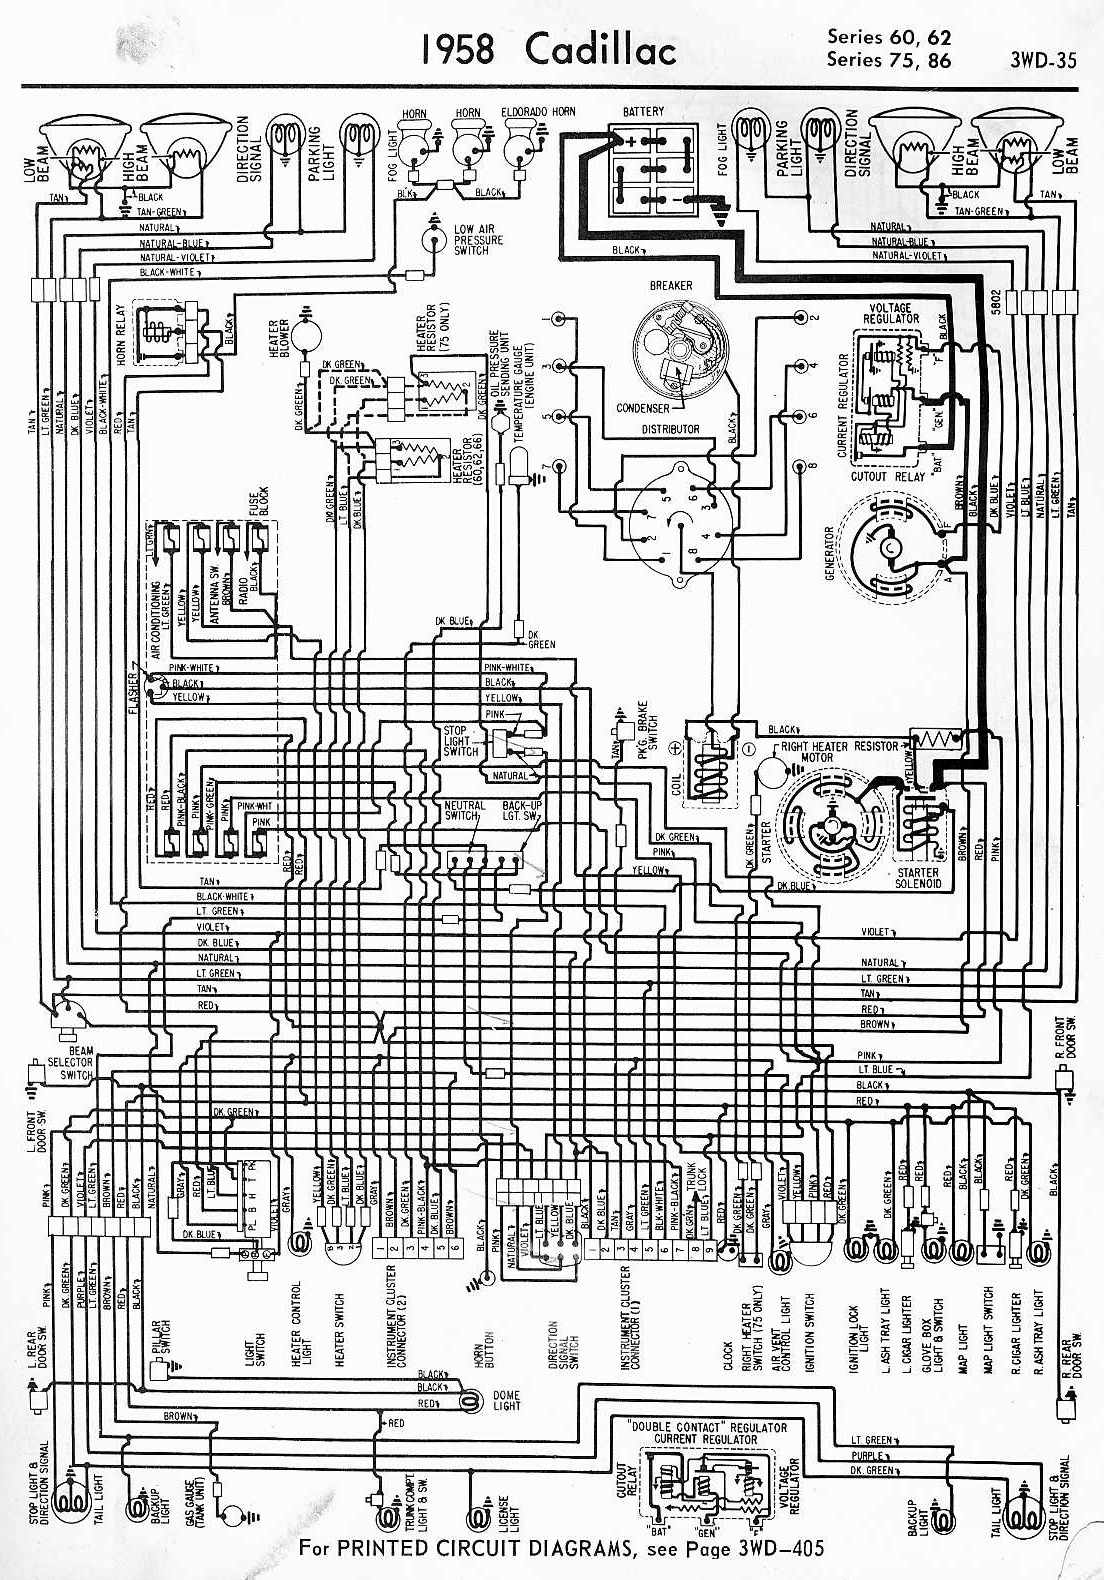 Pixhawk Wiring Diagram Free Download Car Harness 75 W With Current Limiting Circuit Tradeoficcom 1934 Packard Enthusiast Diagrams U2022 Rh Rasalibre Co